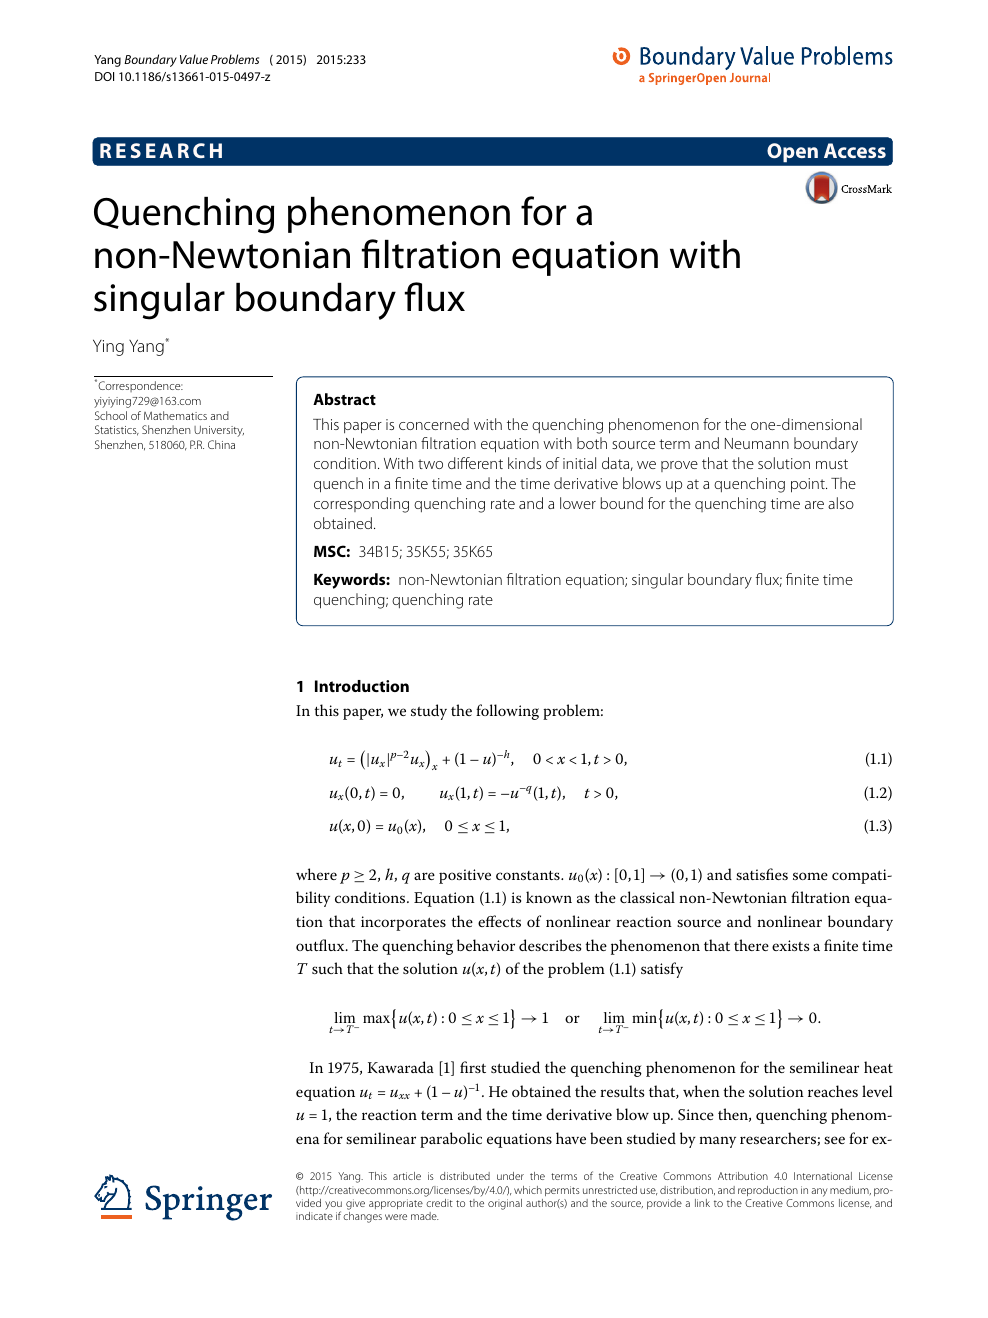 Quenching phenomenon for a non-Newtonian filtration equation